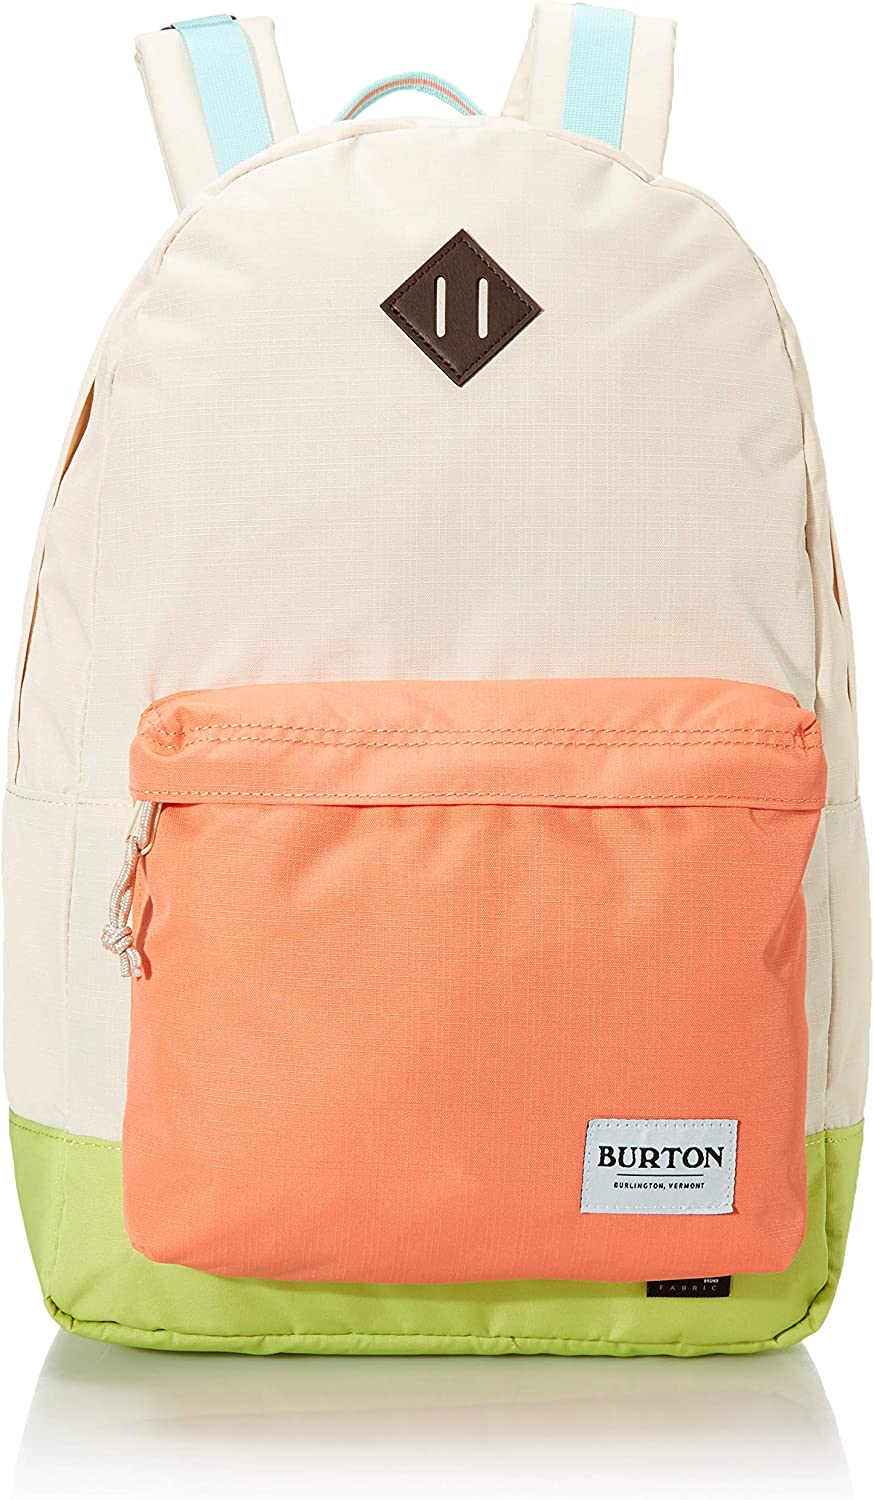 Burton Kettle Backpack, Classic School Pack, Laptop Pocket